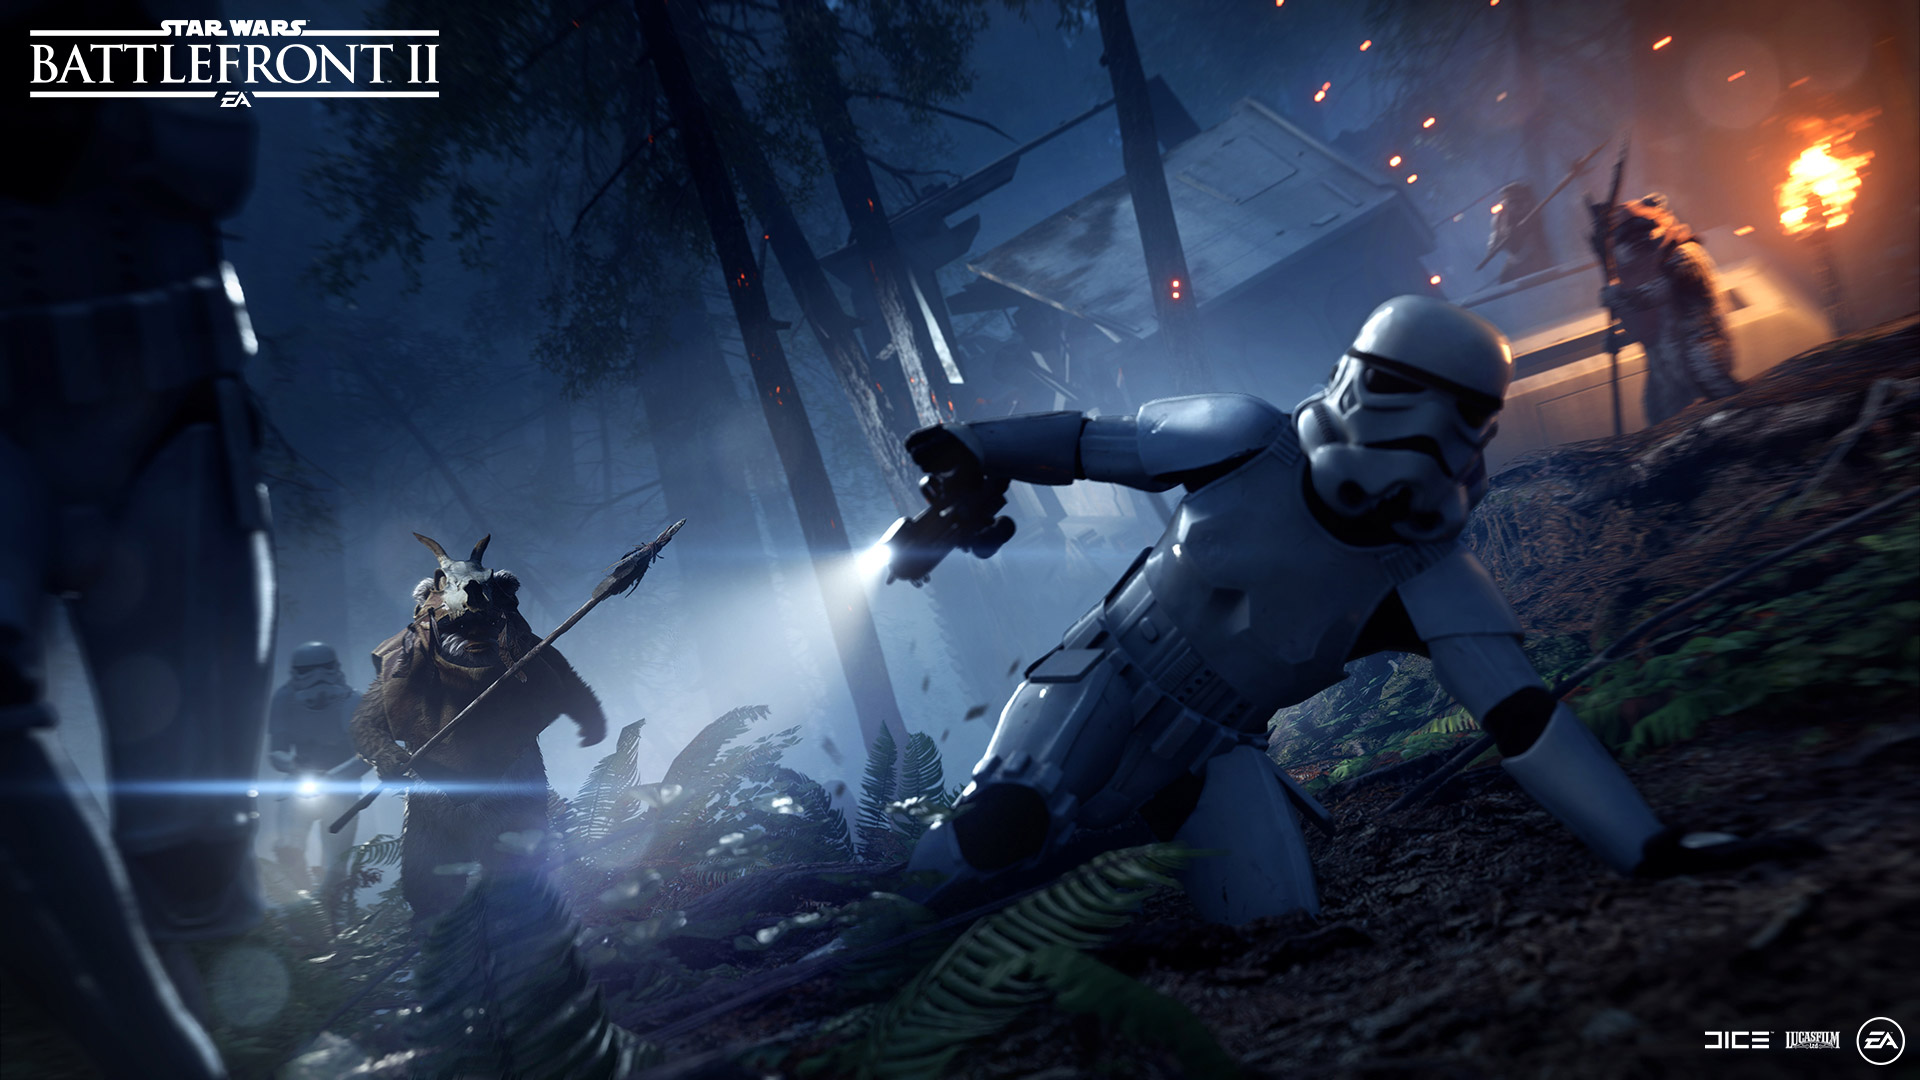 Ewoks vs Stormtroopers in new Battlefront II mode, Ewok Hunt